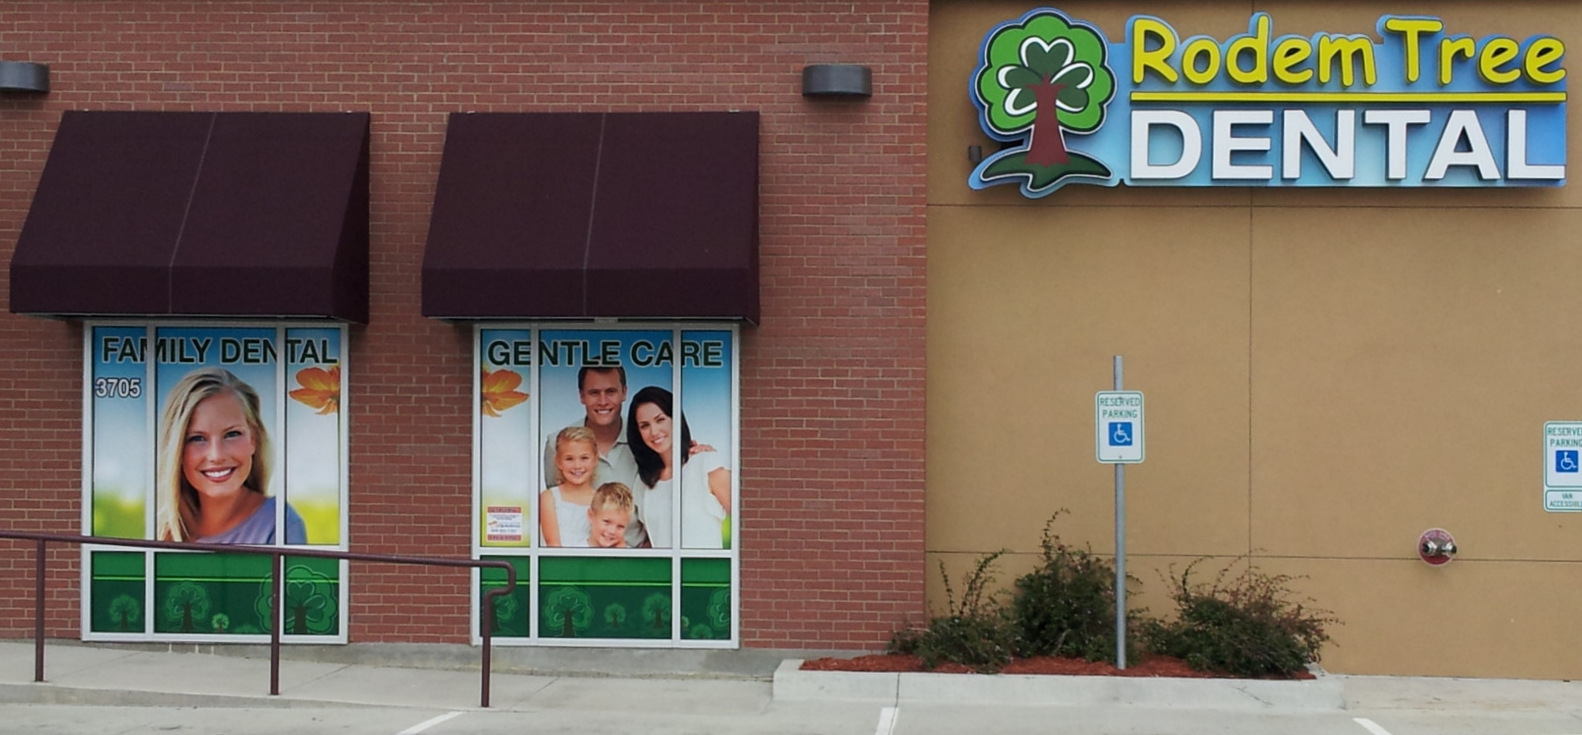 Dental signs, window perf, logo, branding